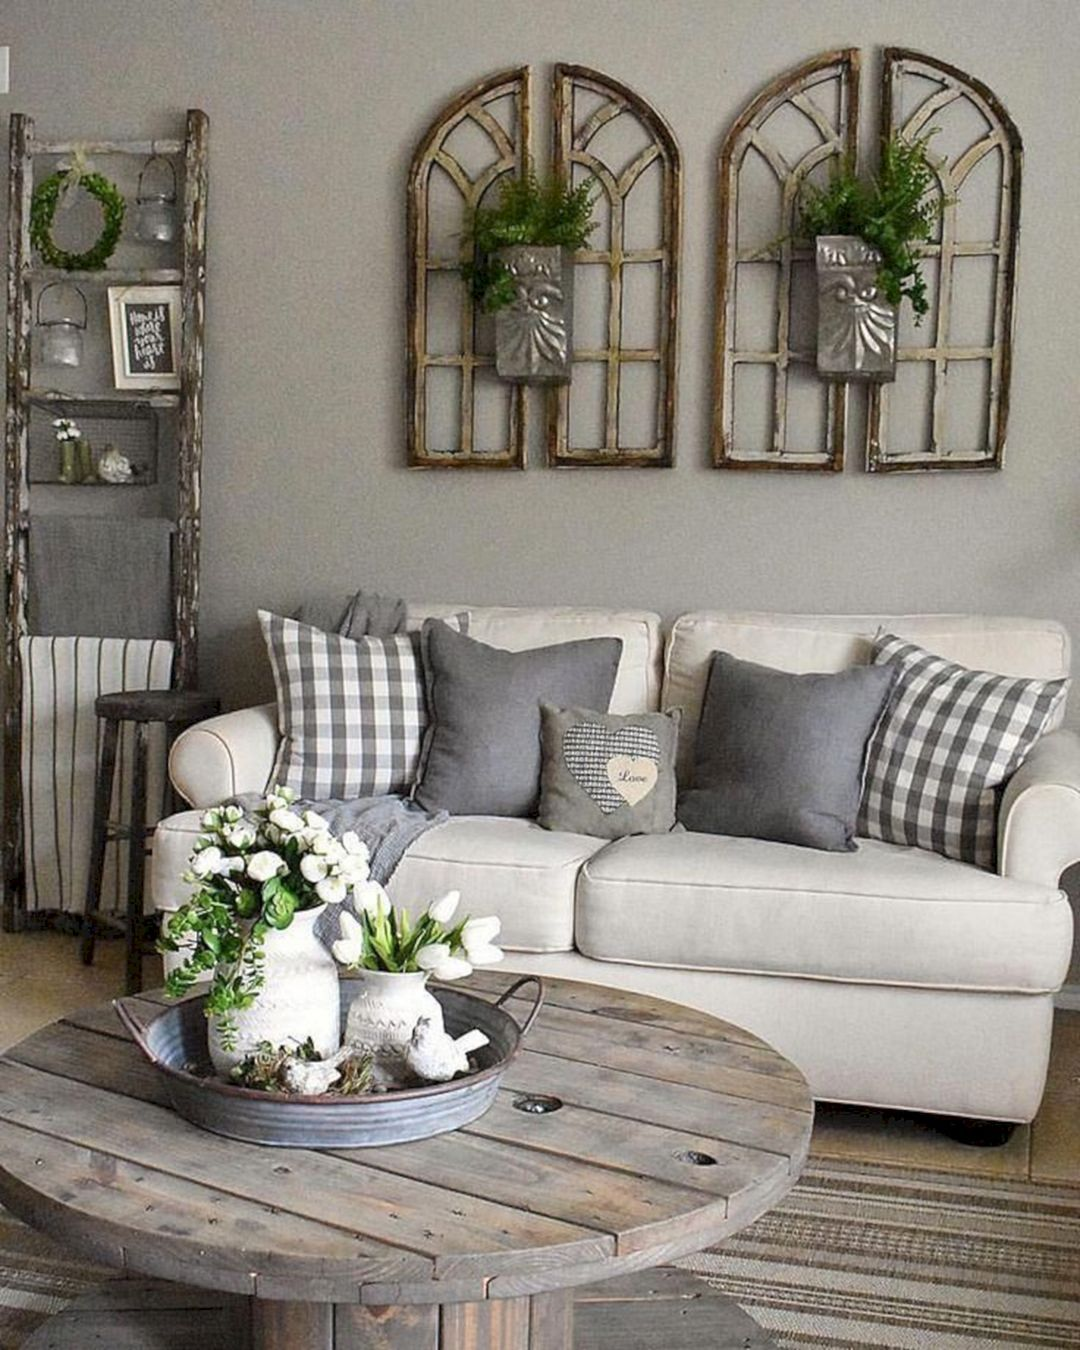 17 Beautiful DIY Farmhouse Decoration Ideas You Need To